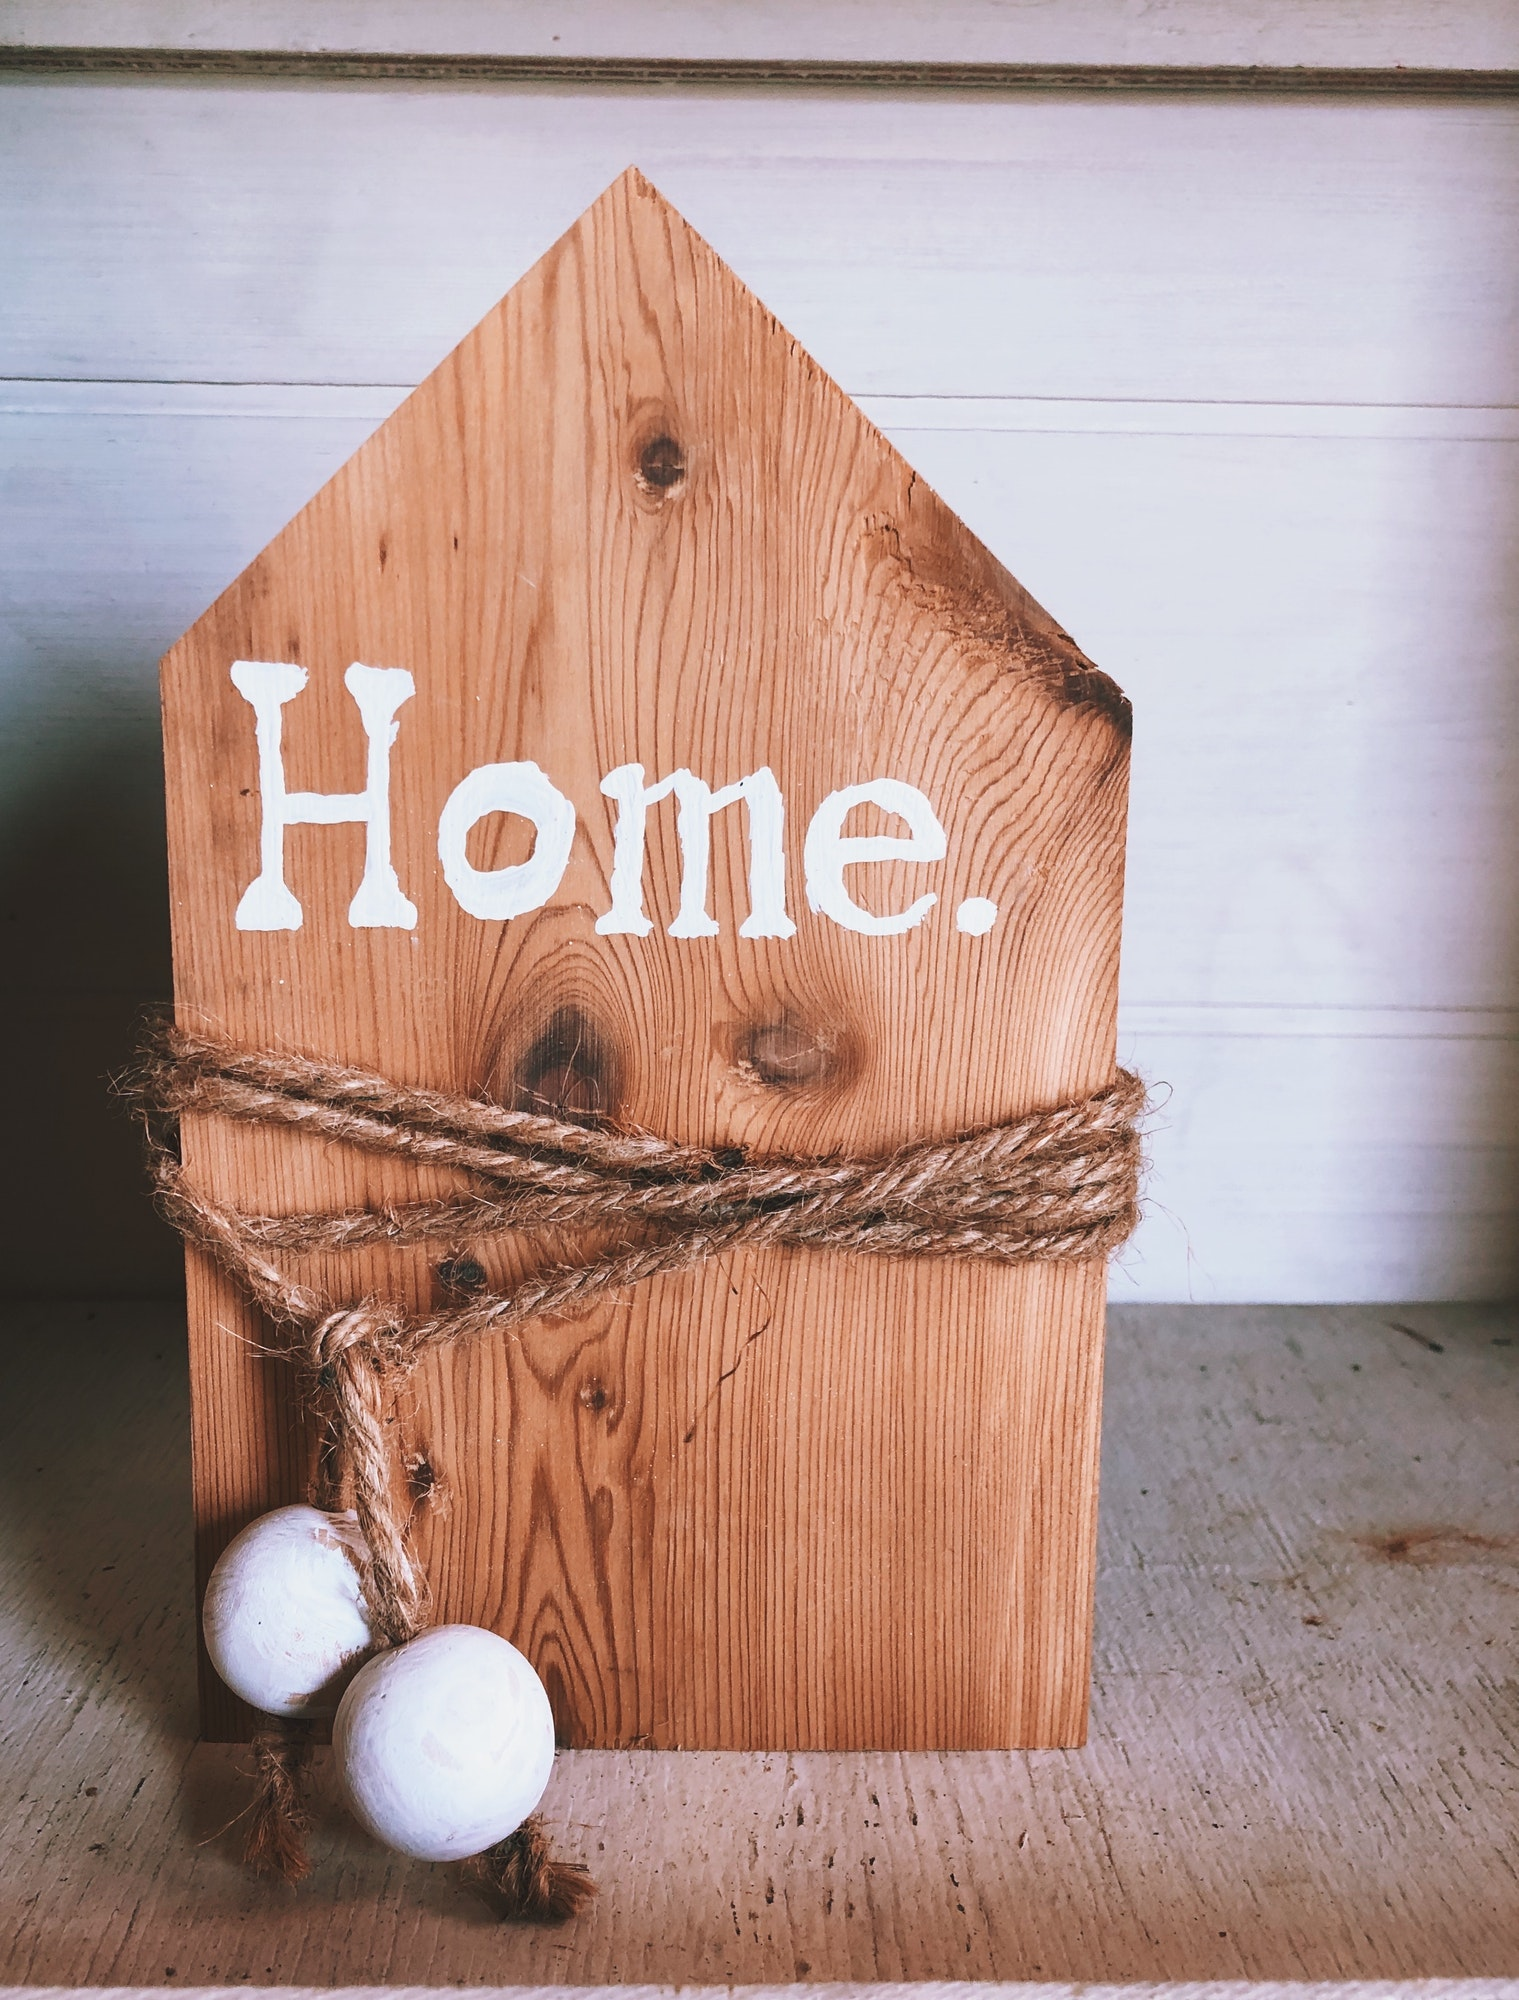 Handmade wooden home decor with a word Home